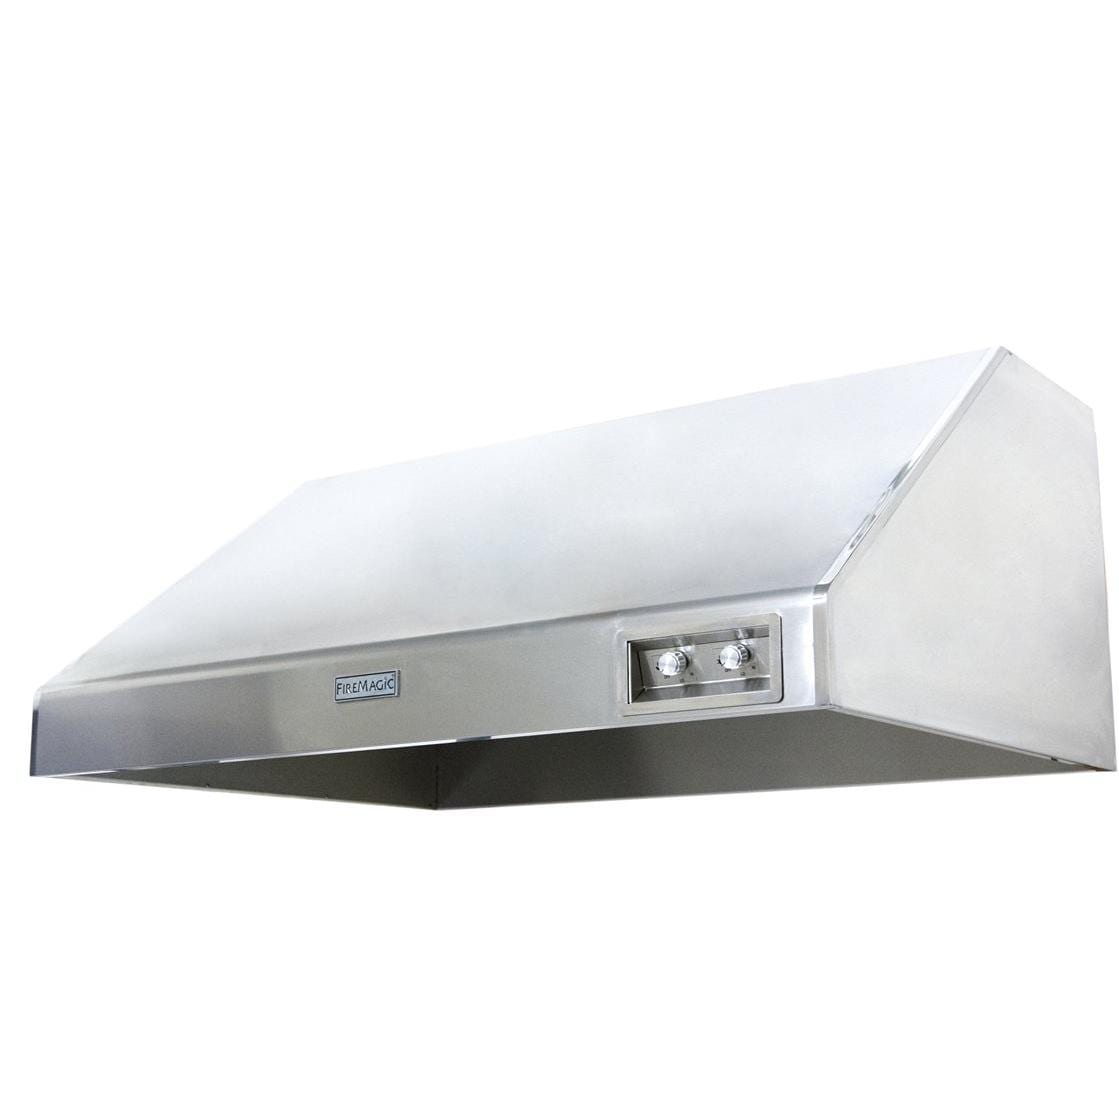 Fire Magic 48-Inch Stainless Steel Outdoor Vent Hood